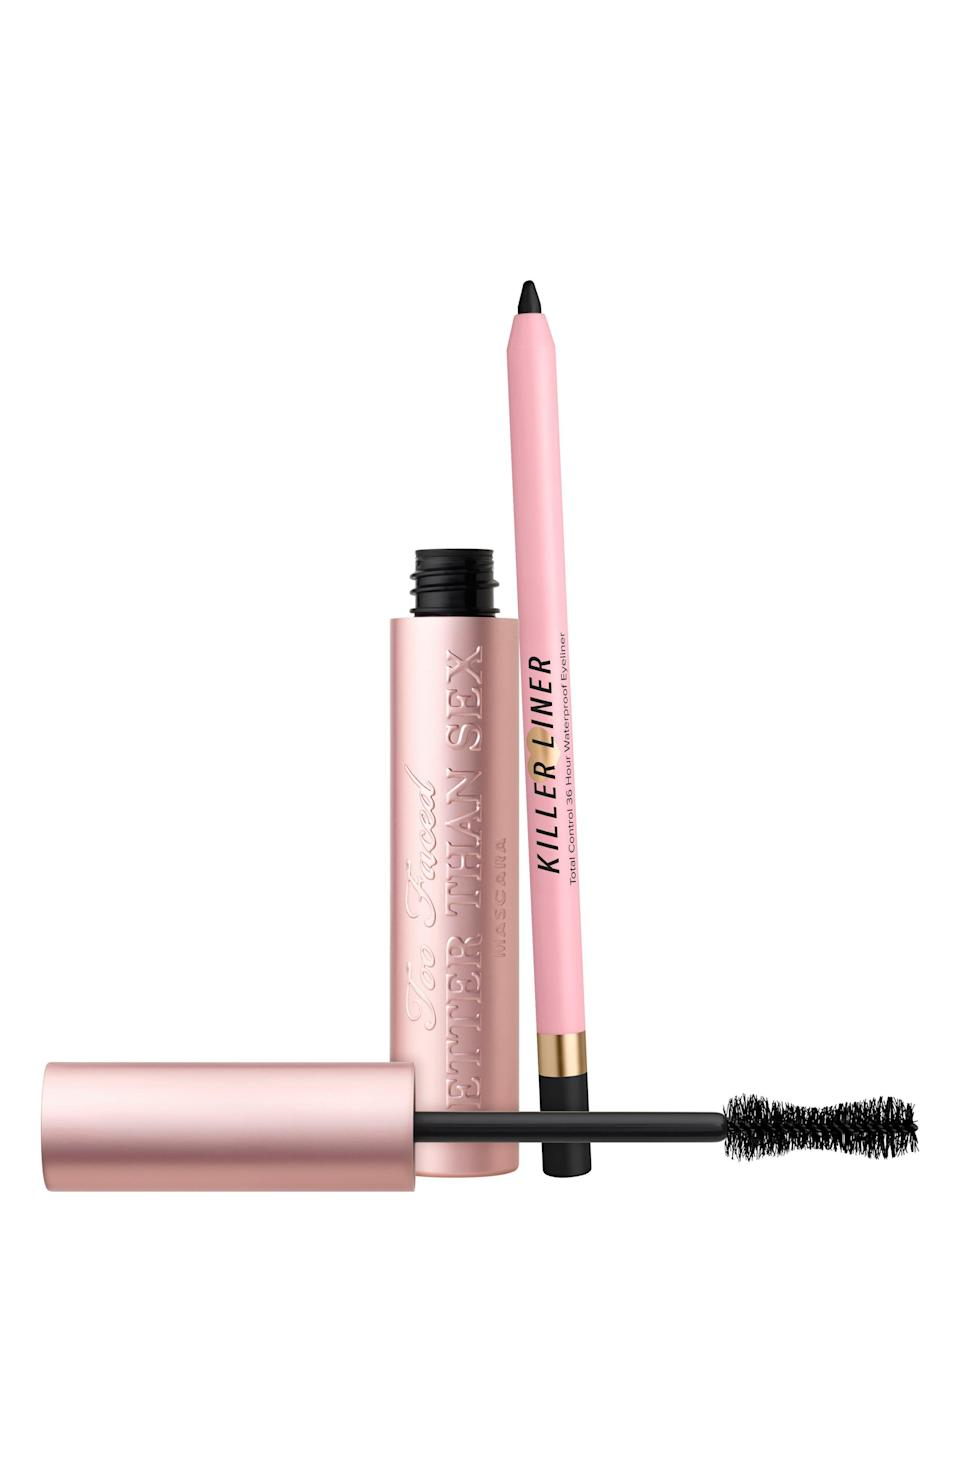 """<p><strong>Too Faced</strong></p><p>nordstrom.com</p><p><strong>$32.00</strong></p><p><a href=""""https://go.redirectingat.com?id=74968X1596630&url=https%3A%2F%2Fwww.nordstrom.com%2Fs%2Ftoo-faced-full-size-better-than-sex-volumizing-mascara-killer-liner-set-46-value%2F5922882&sref=https%3A%2F%2Fwww.elle.com%2Fbeauty%2Fg36944650%2Fnorstrom-anniversary-beauty-sale-2021%2F"""" rel=""""nofollow noopener"""" target=""""_blank"""" data-ylk=""""slk:Shop Now"""" class=""""link rapid-noclick-resp"""">Shop Now</a></p><p>The name of this mascara might terrorize my grandma, but hey, it's not wrong. Give yourself a nice smokey eye and the most dramatic lashes of your life with kit.</p>"""